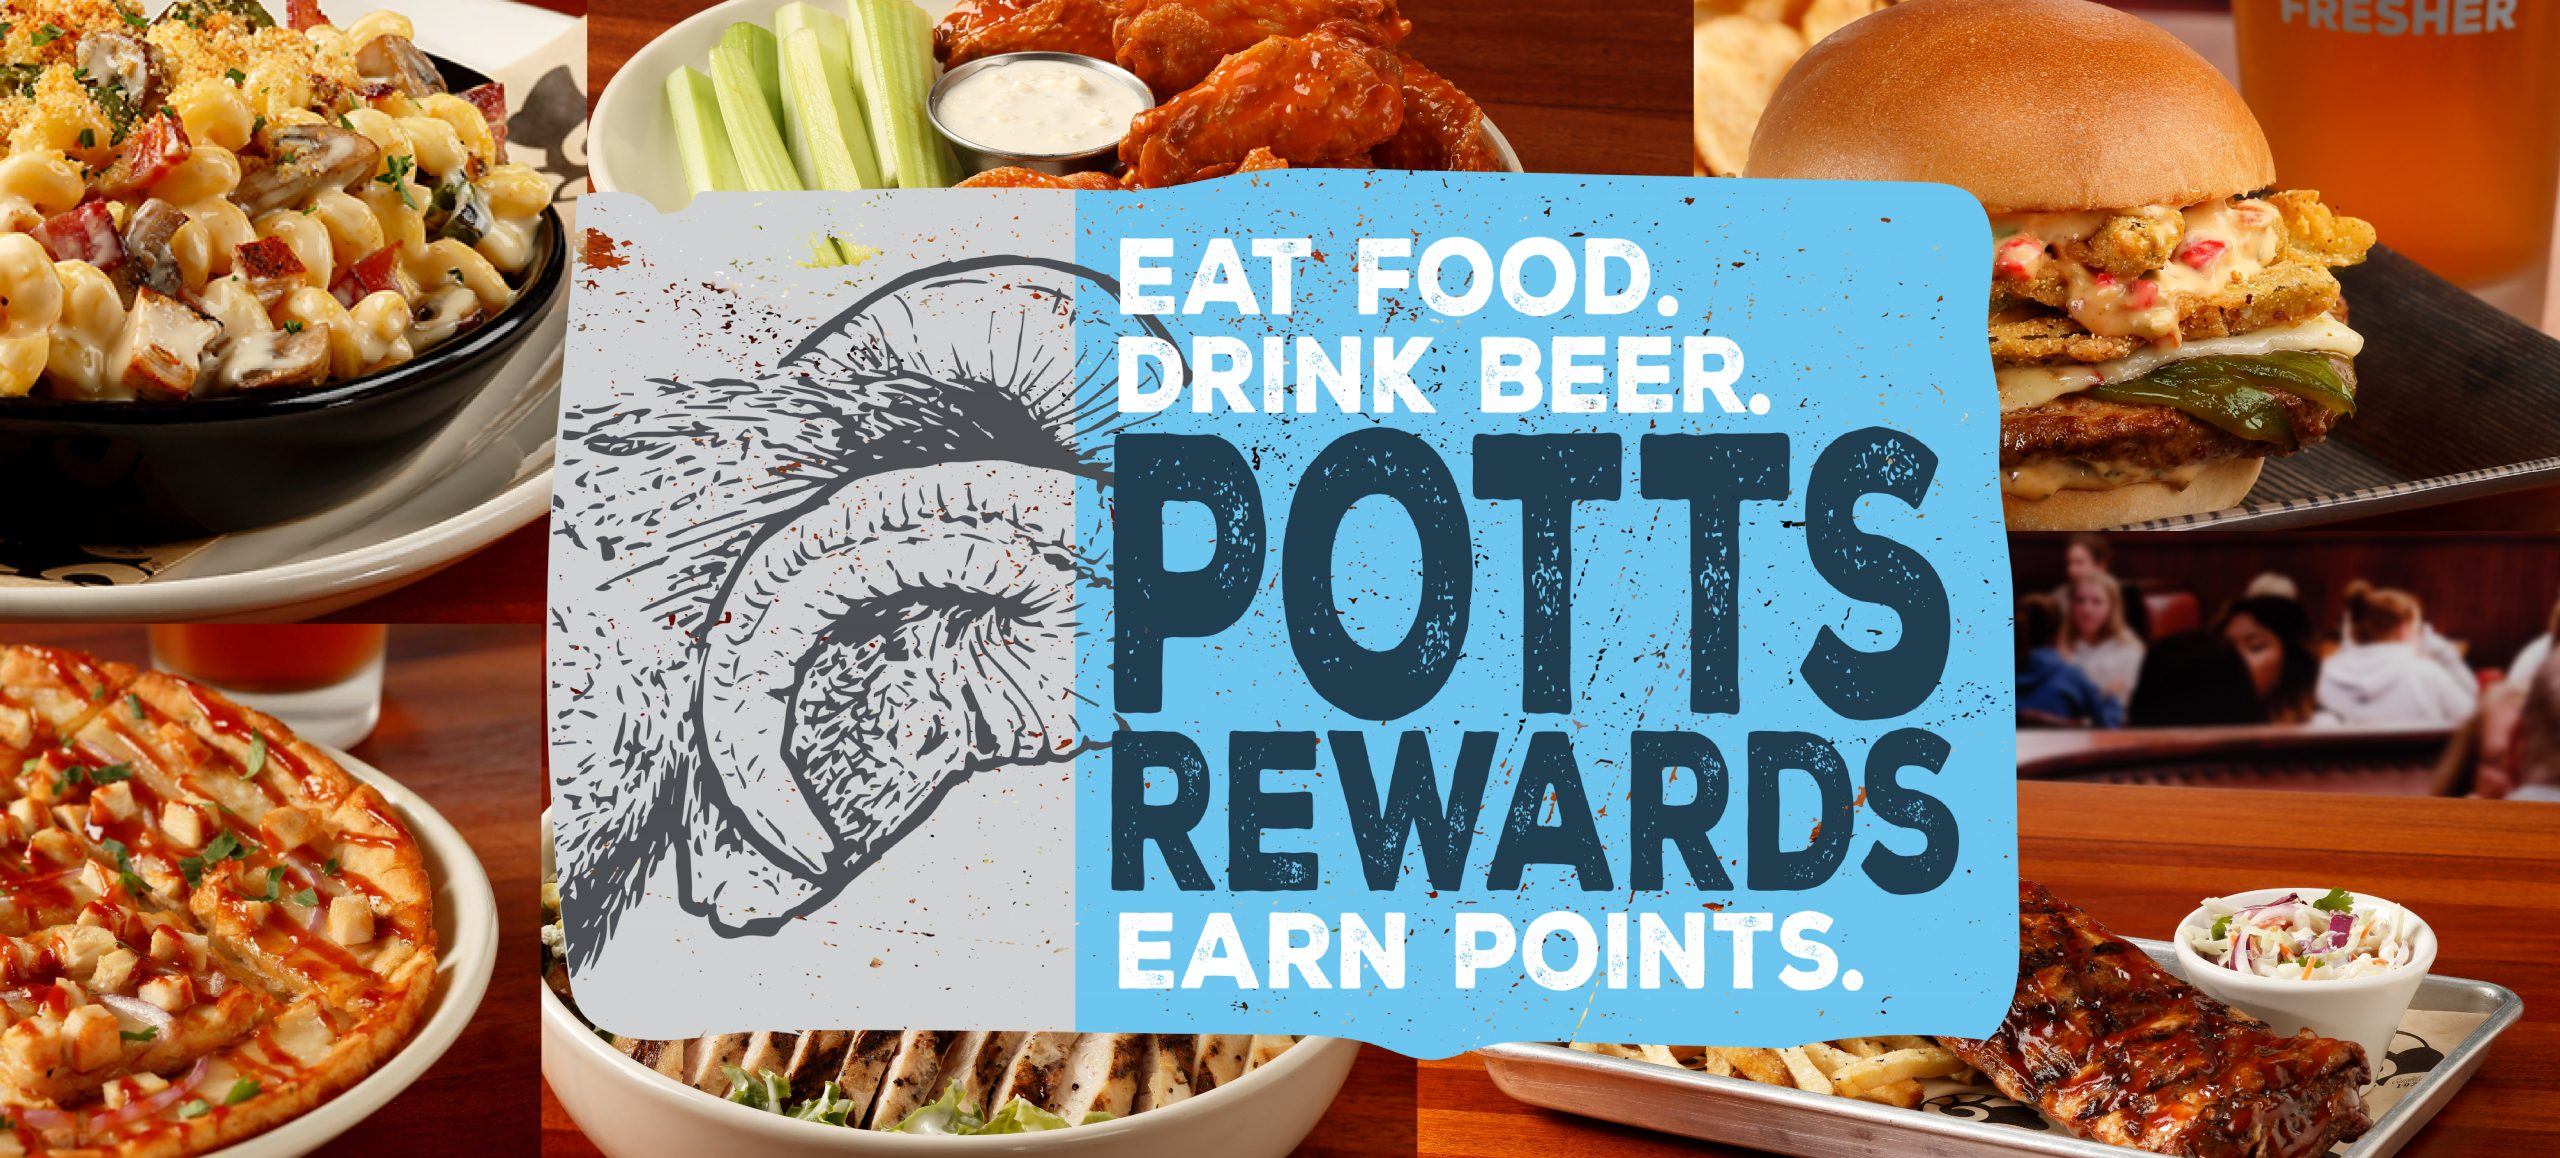 potts rewards program